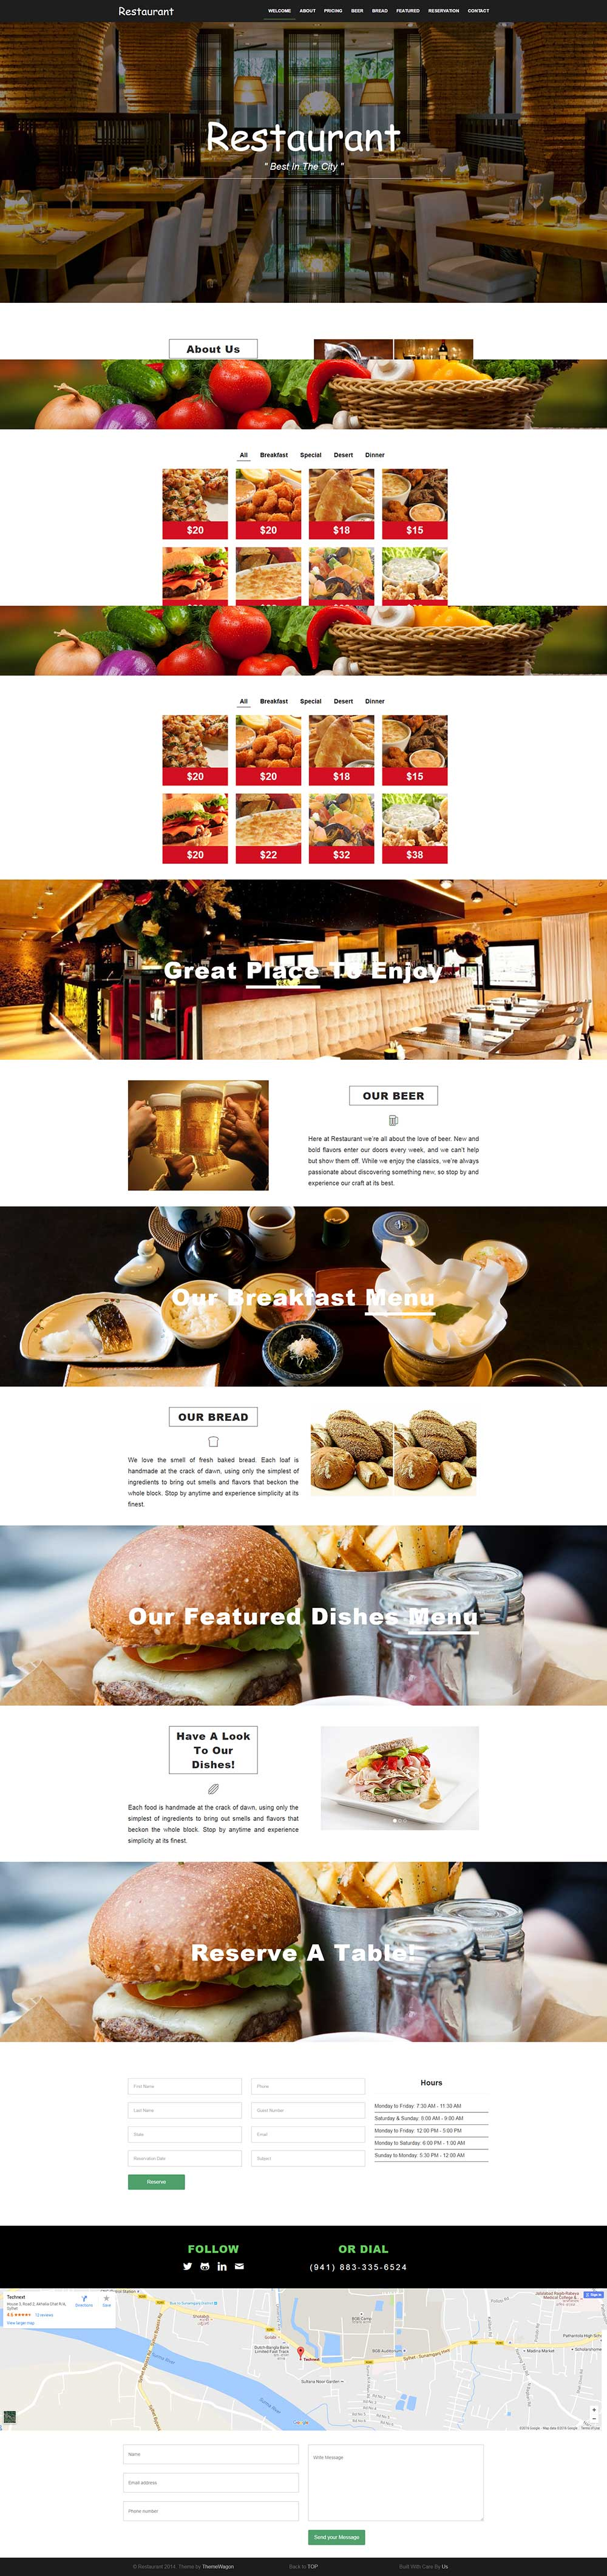 Restaurant – A Free Restaurant Cafe HTML5 Template with Bootstrap 3